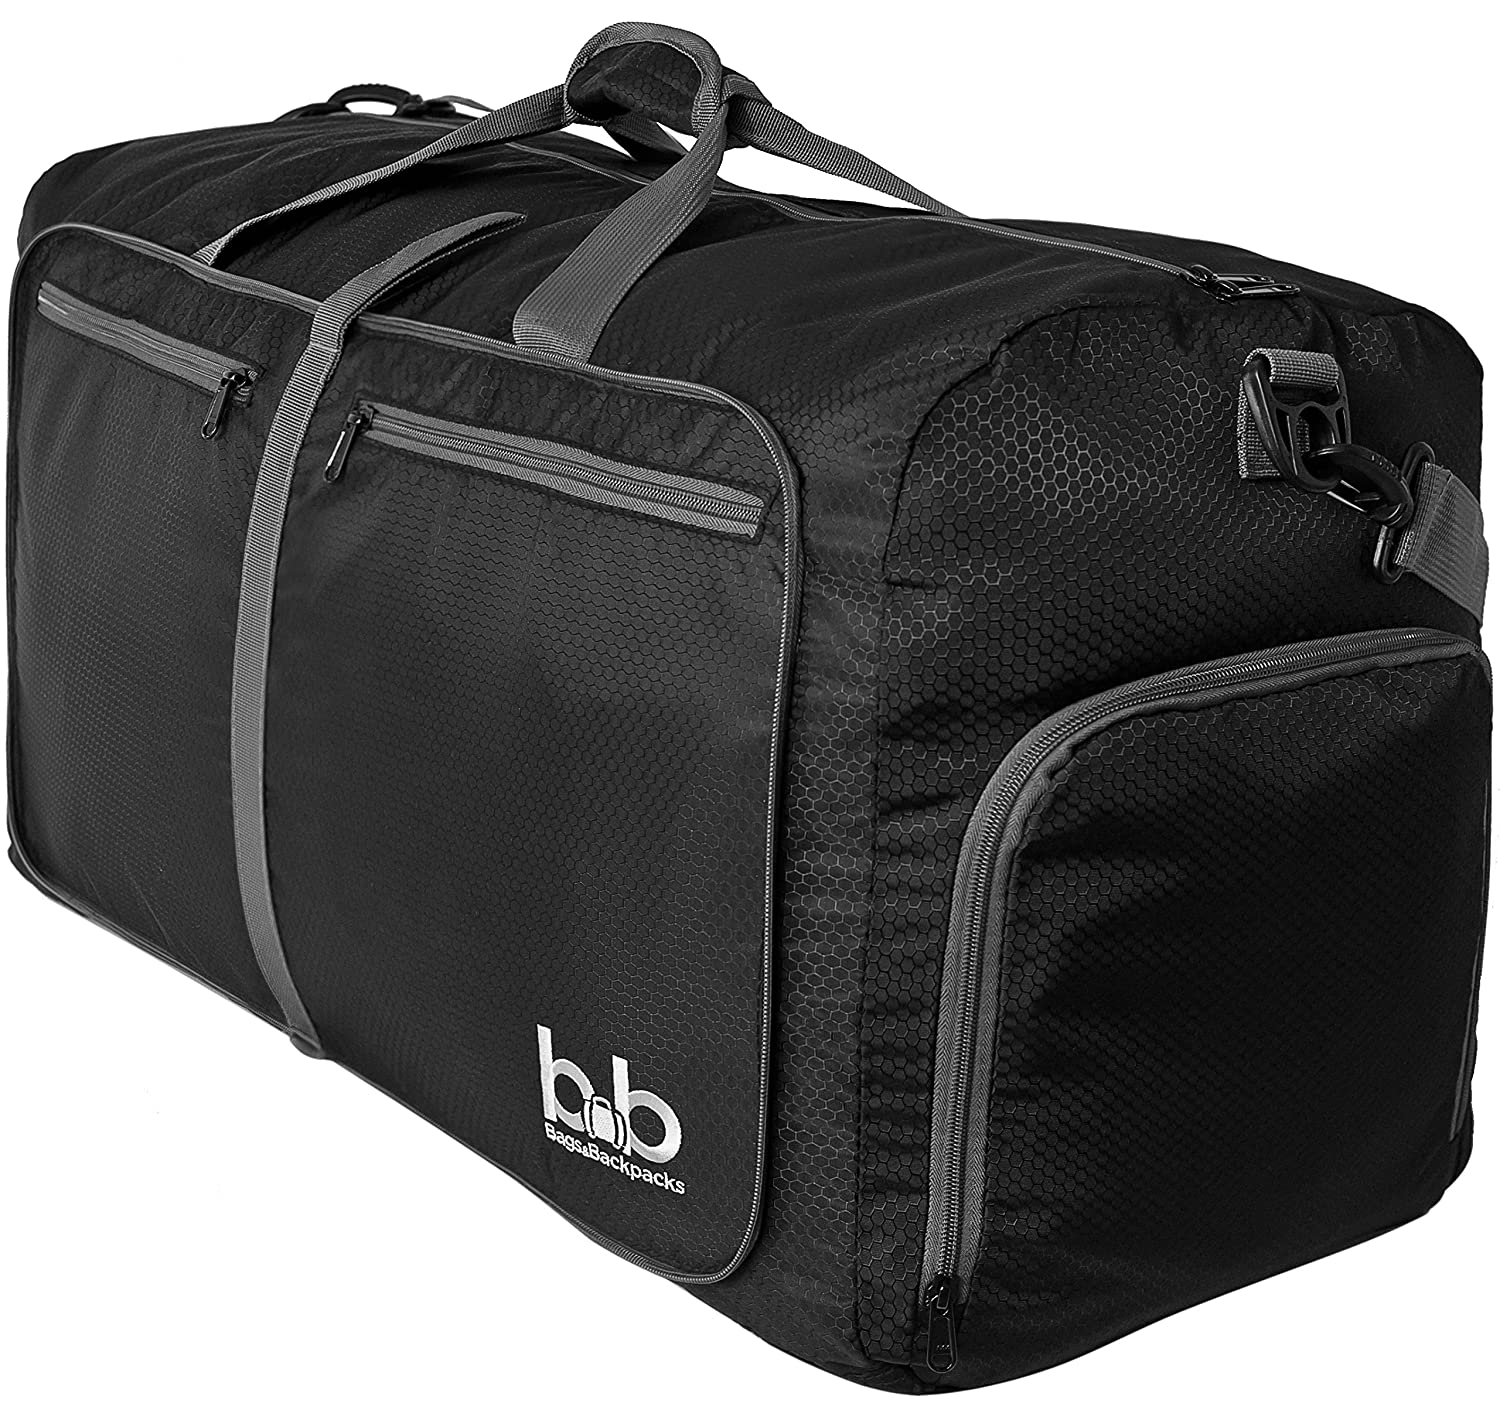 Extra Large Duffle Bag 100L - Packable Travel